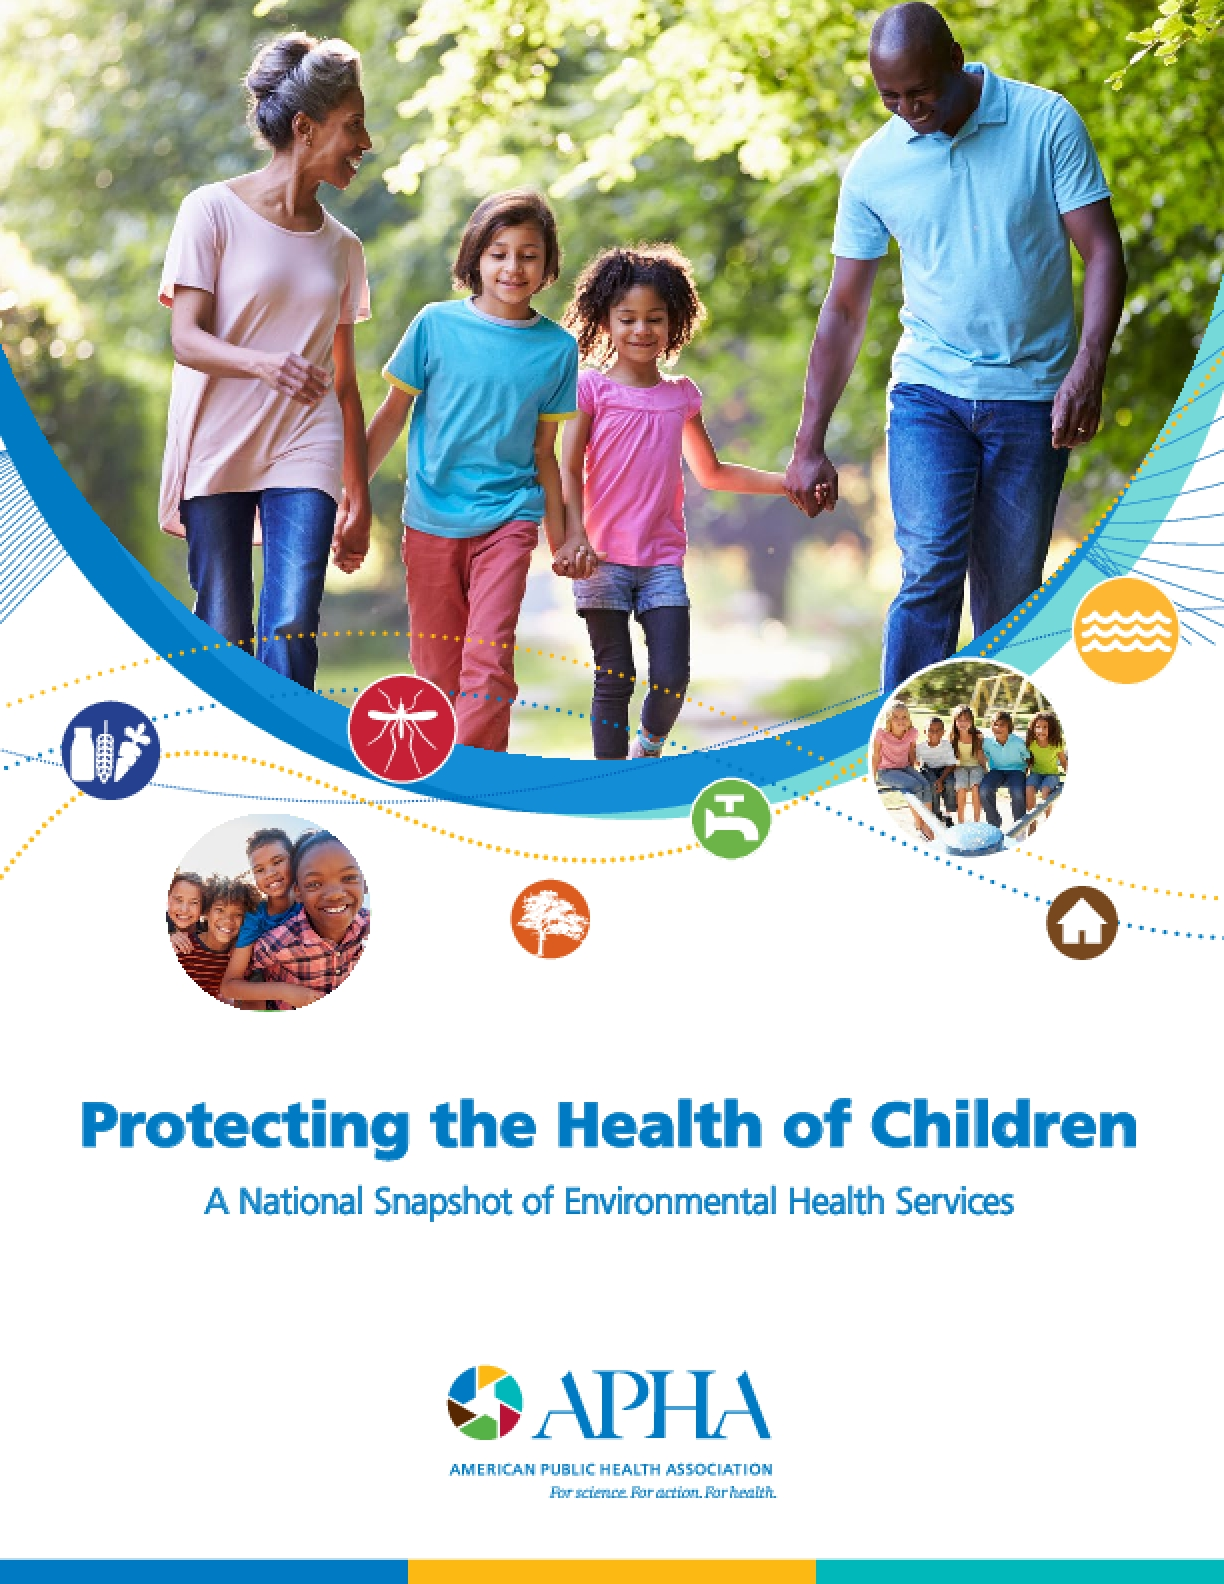 Protecting the Health of Children A National Snapshot of Environmental Health Services